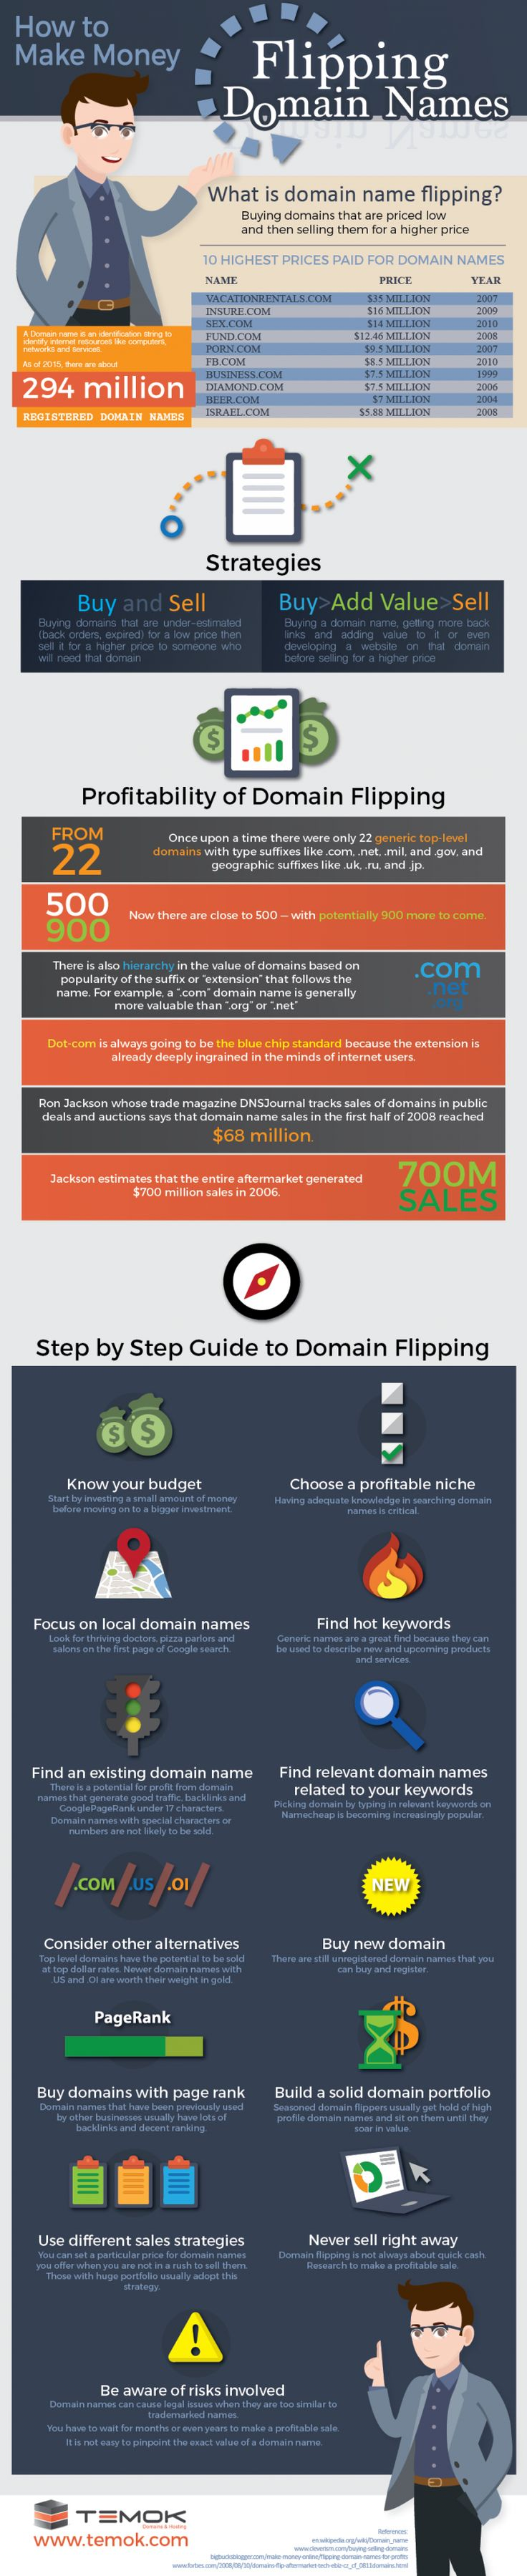 Domain flipping is the art of buying great domain names and then selling them to those who really want them and who plan to build a company website.